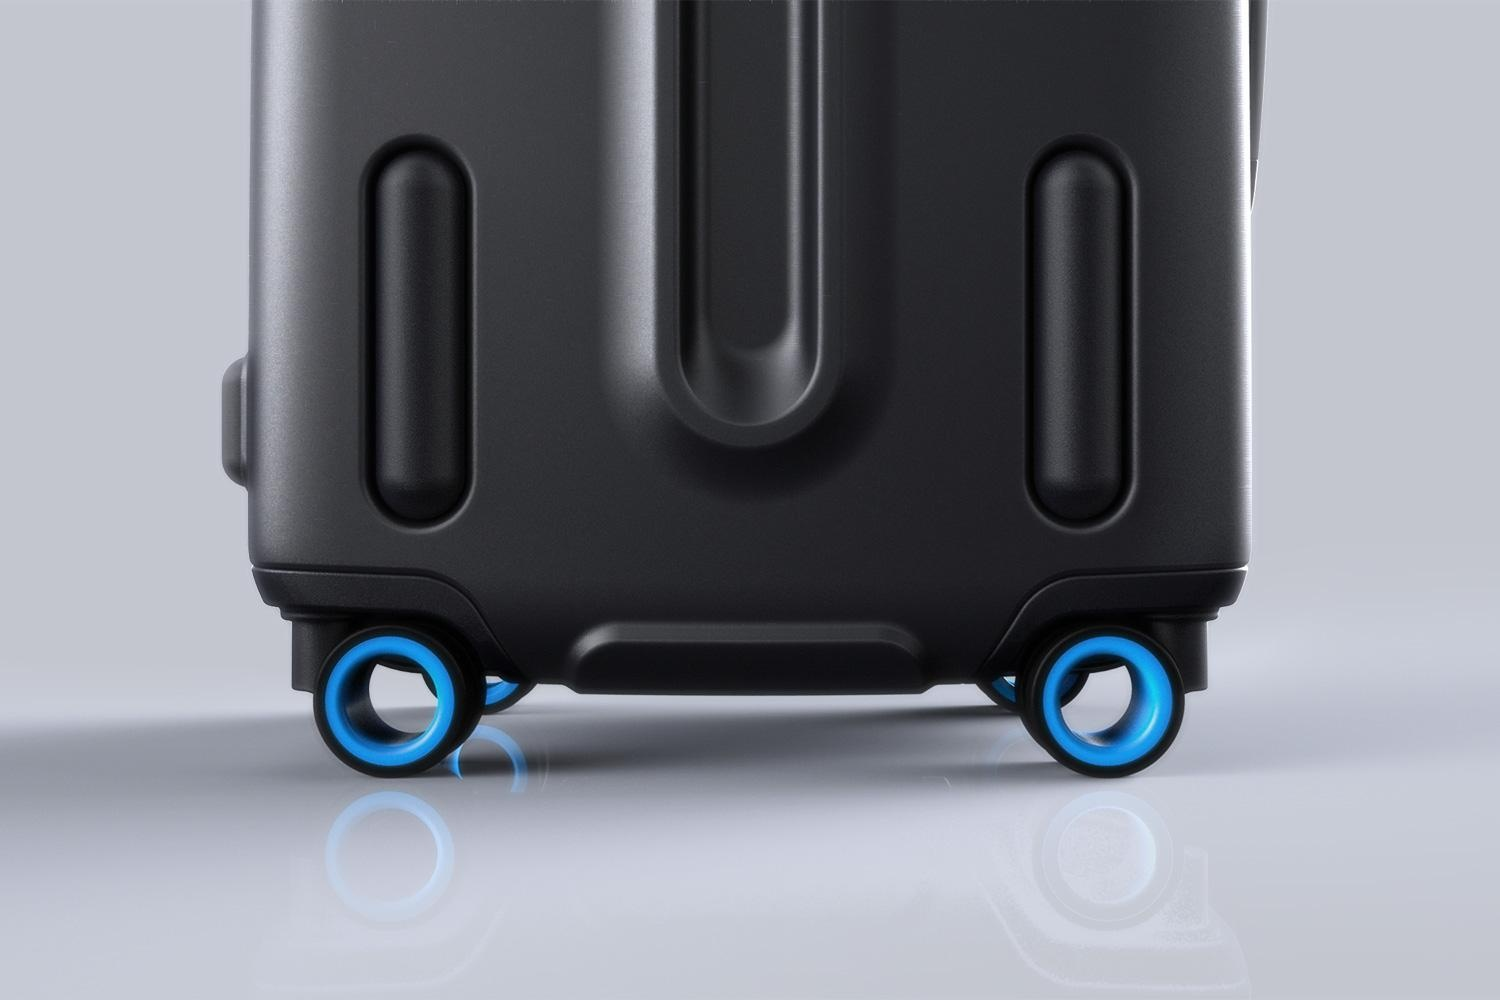 bluesmart-connected-suitcase-wheels-1500×1000